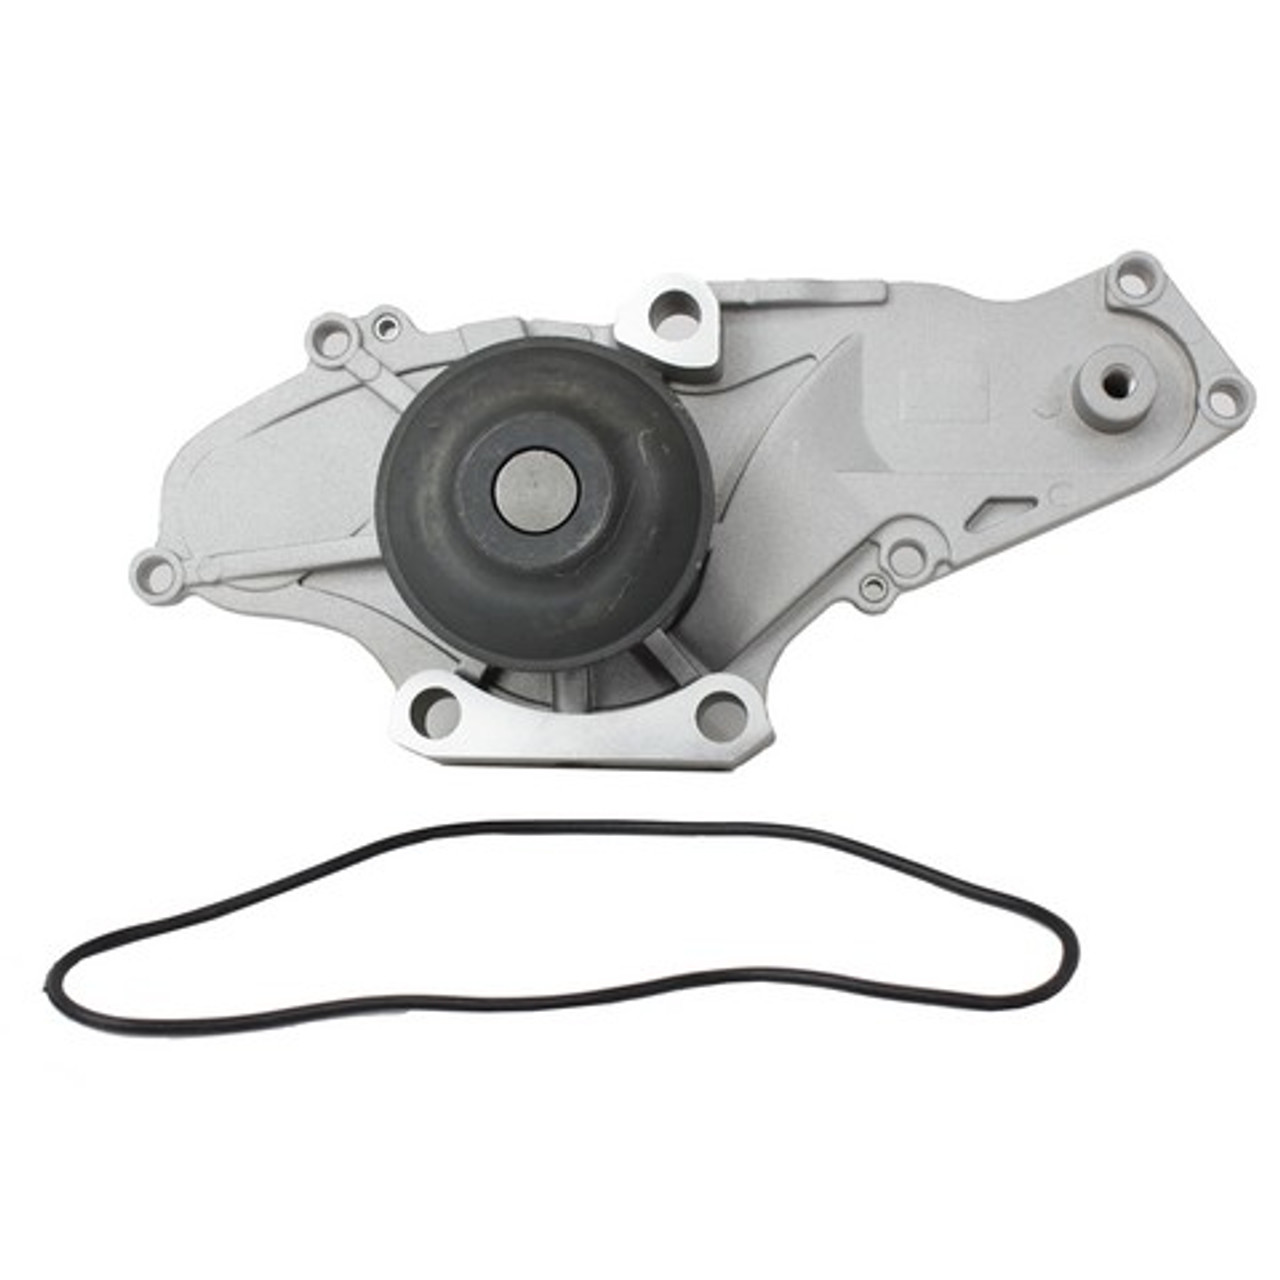 Water Pump 3.5L 2011 Acura TSX - WP285.63